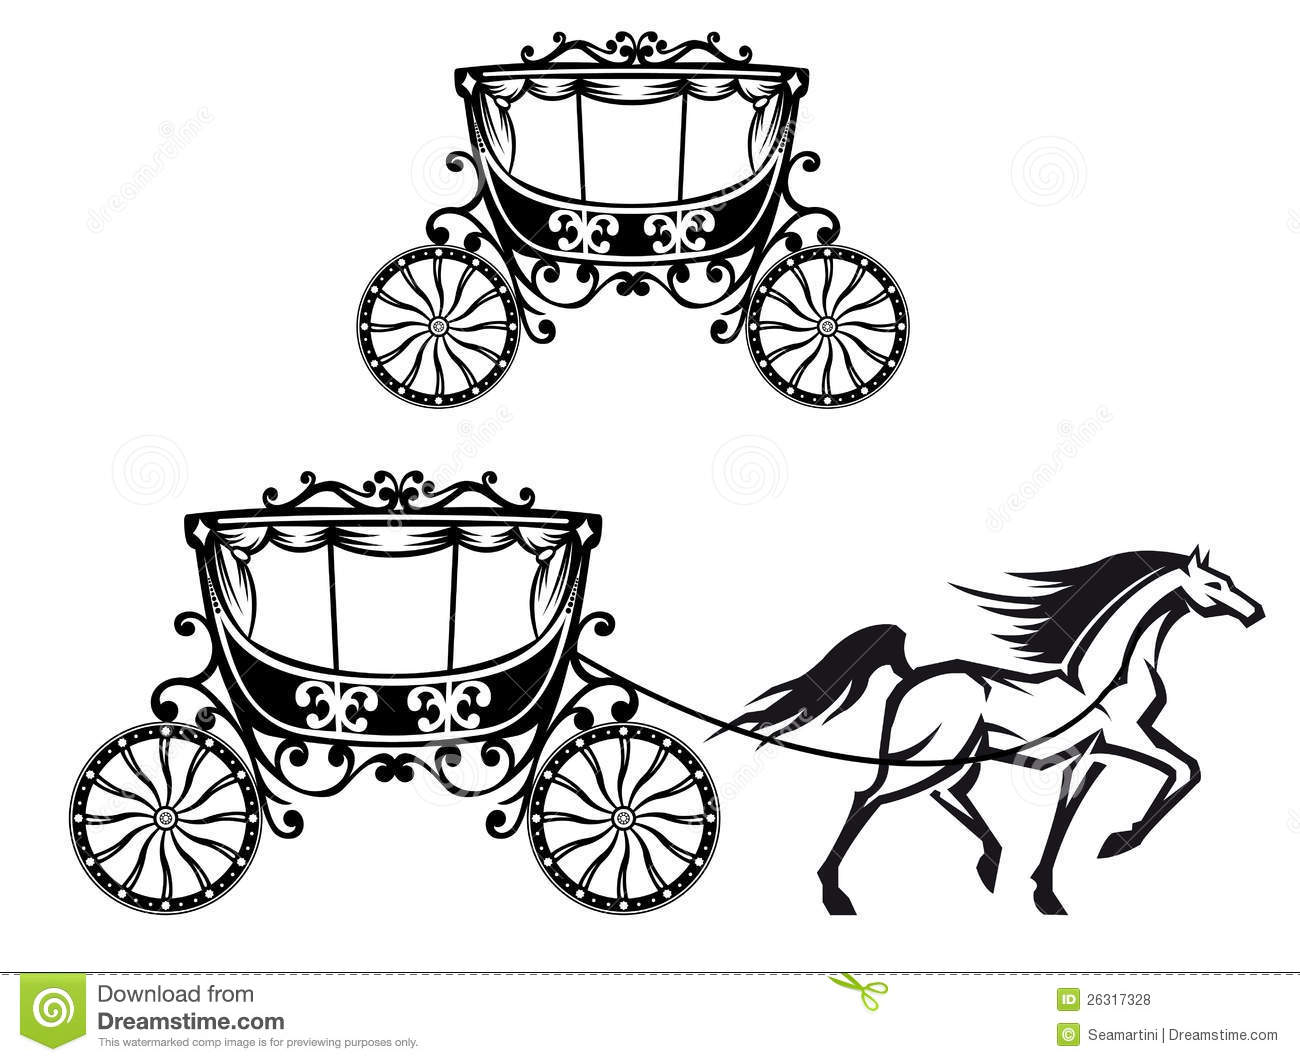 Royalty Free Stock Photo Neuschwanstein Castle Germany Image23517645 additionally Blue Cinderella Carriage Outline Silhouette Clipart furthermore Sofia The First Coloring Pages For Kids Printable Free furthermore Harry Potter as well Desenhos Para Colorir Da Princesa Sofia Disney Para Imprimir. on disney castle silhouette logo